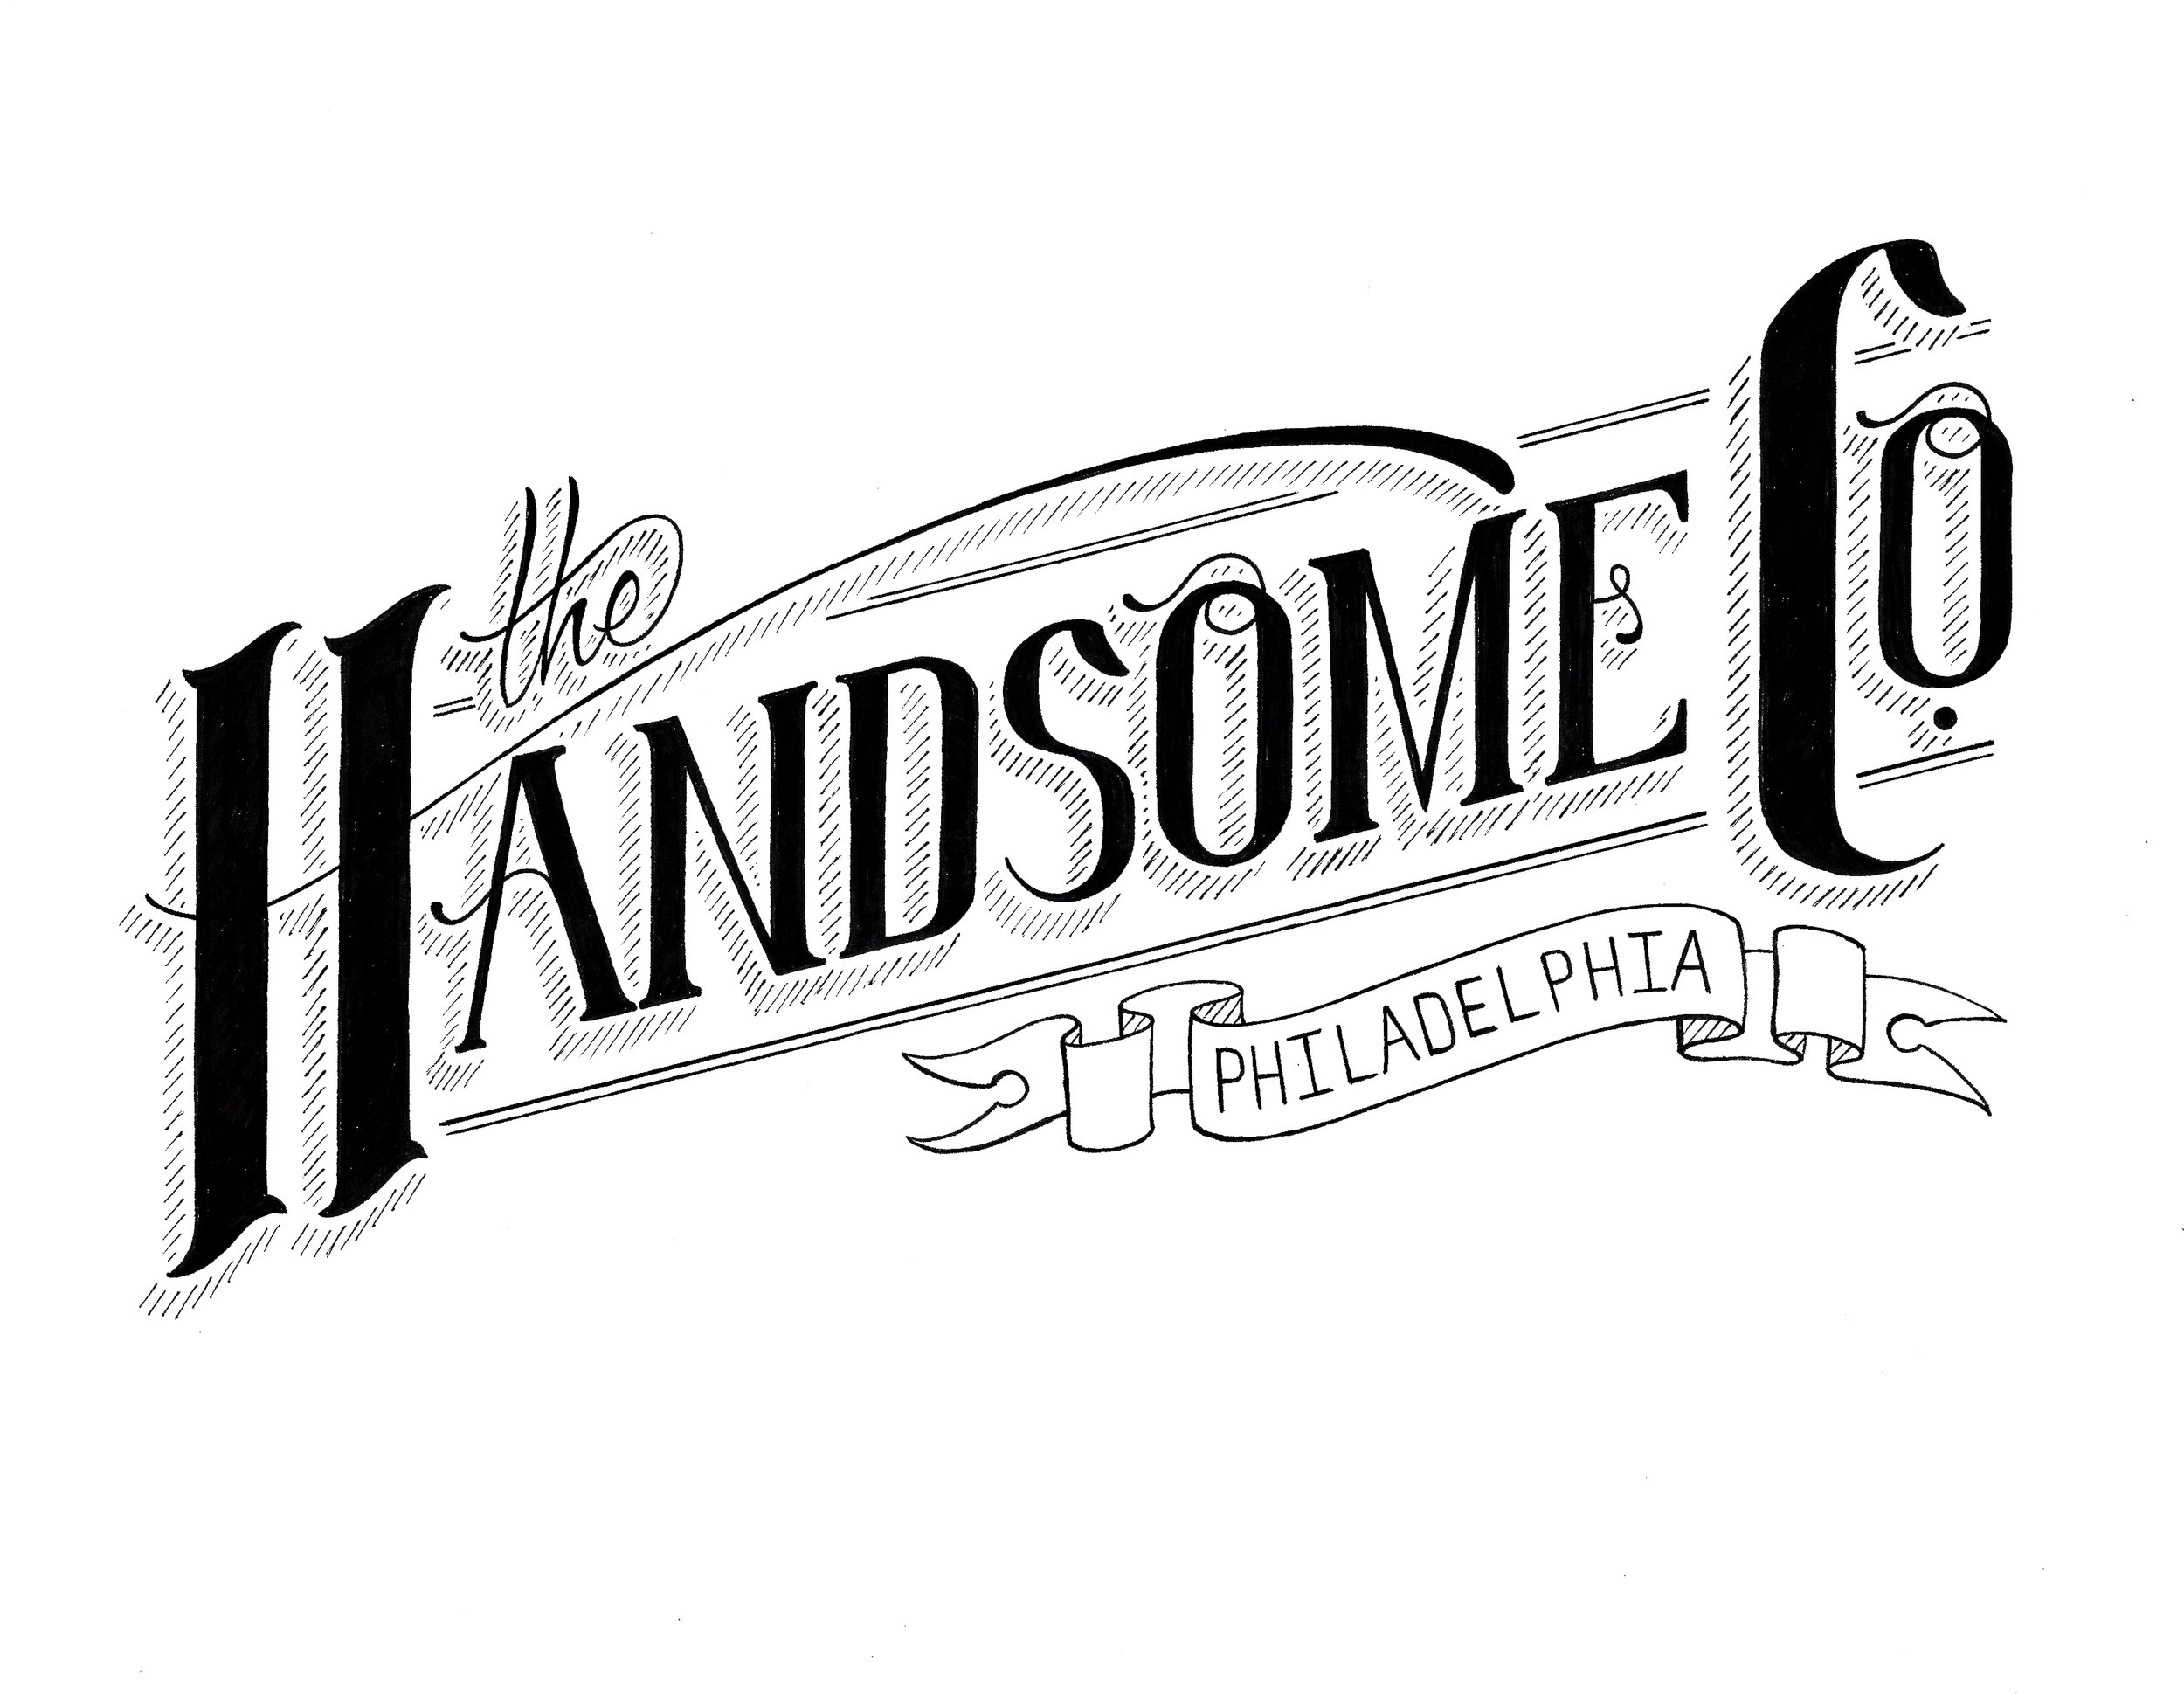 graphic design Justin Turkus Philadelphia tattoo artist the handsome company logo black beard oil mustache wax.jpg